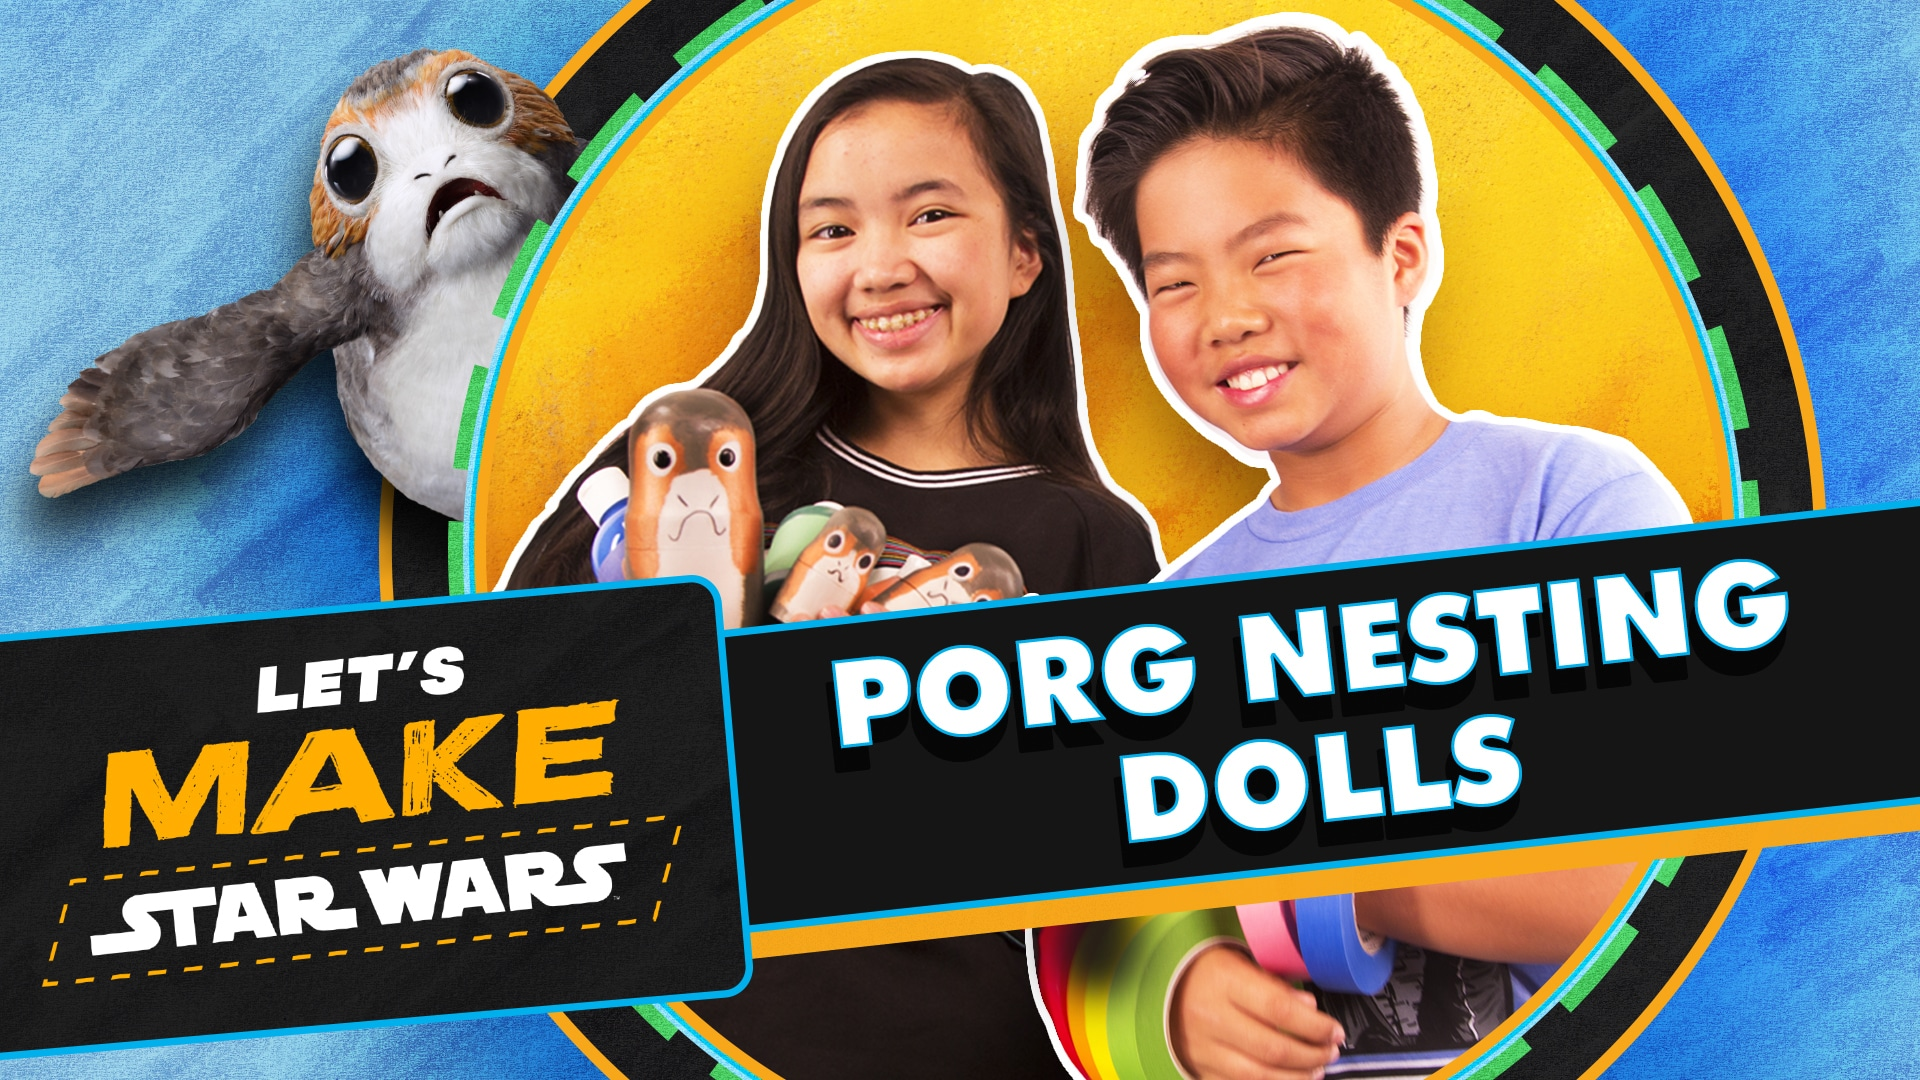 Craft Porg Nesting Dolls DIY Tutorial | Let's Make Star Wars